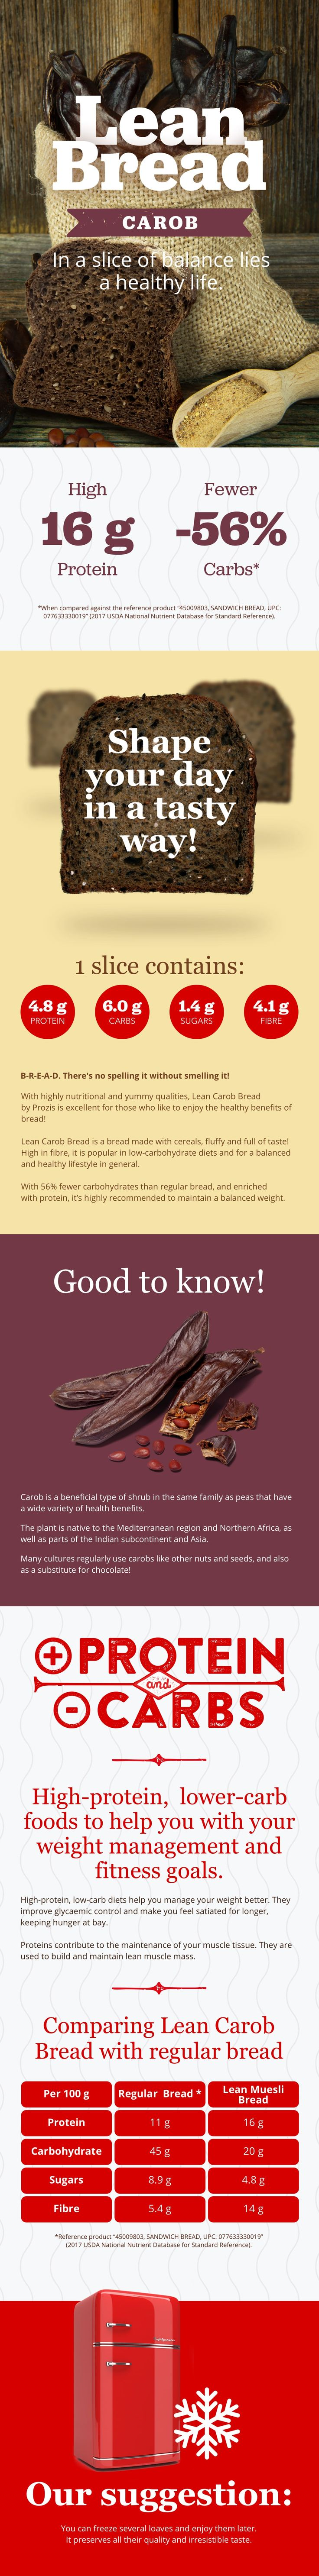 With highly nutritional and yummy qualities, Lean Bread Carob by Prozis is excellent for those who like to enjoy the healthy benefits of bread! #Prozis #ExceedYourself #ProzisRecipes #LeanBread #Carob #recipe #protein  #healthylife #foodie #food #homecooking #foodlover #eatclean #dinner #lunch #fit #nutrition #fitfood #lowcarbs #highprotein